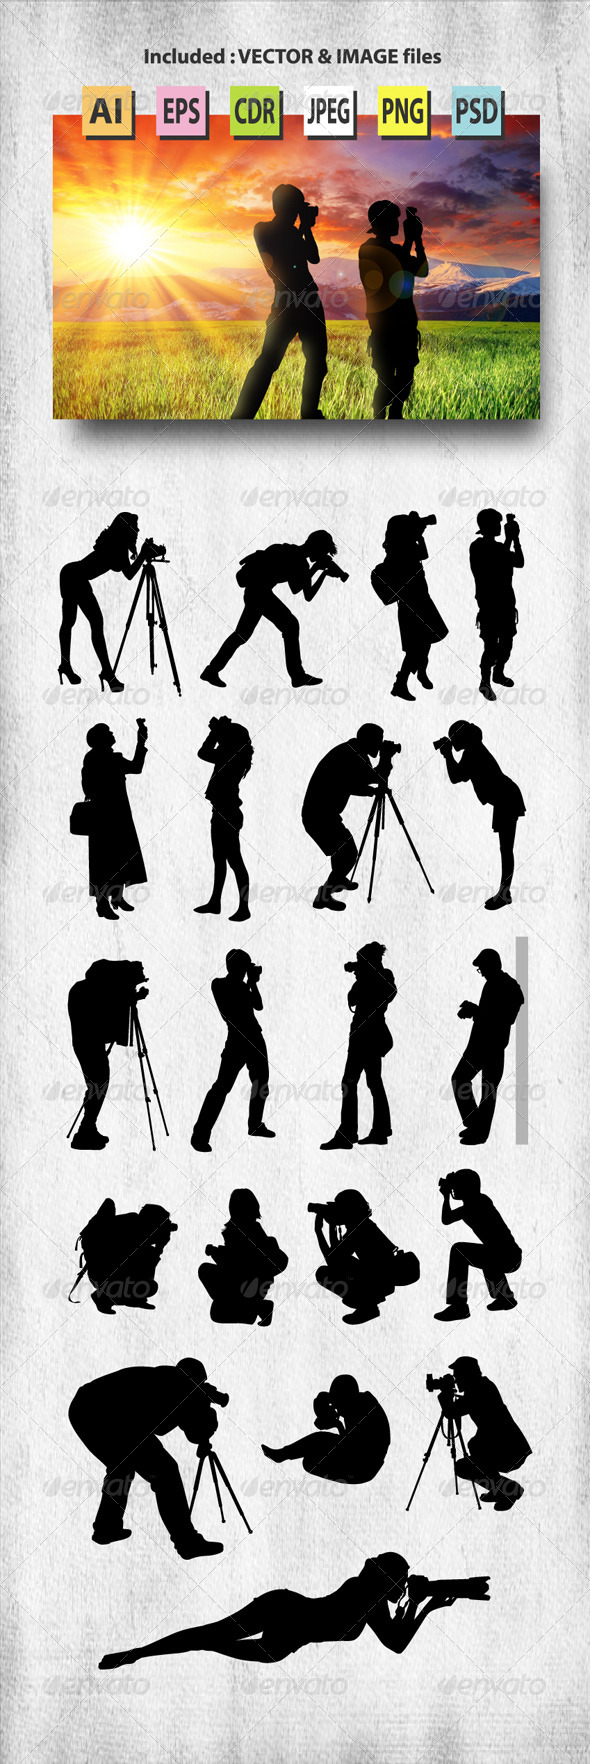 GraphicRiver Photographer Silhouettes 8210209